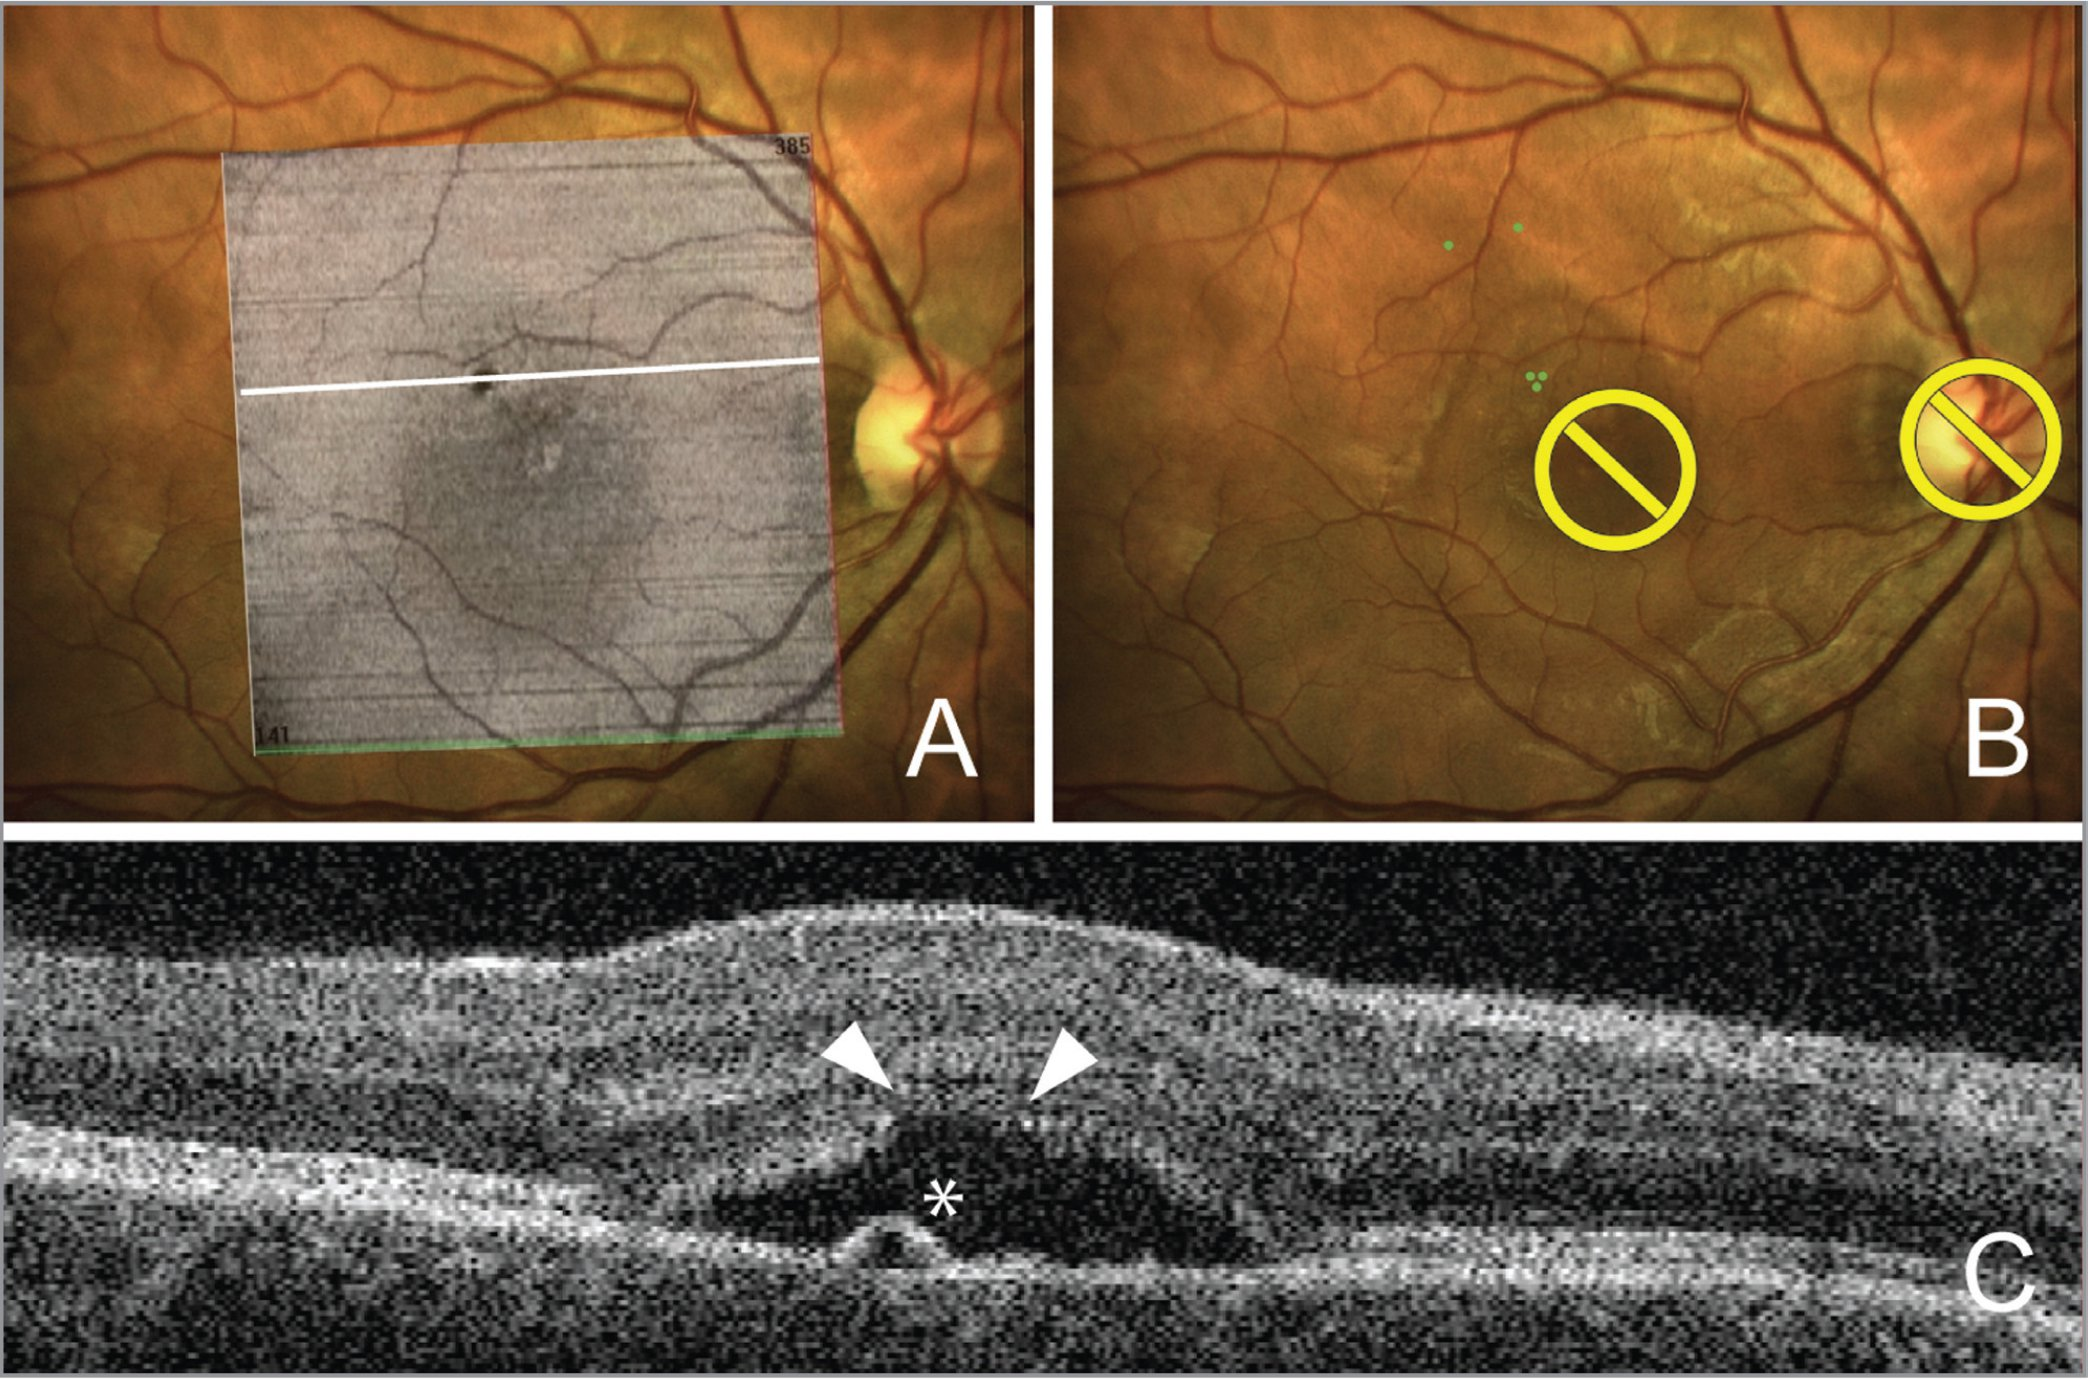 Representative example of fluorescein angiography (FA)-free optical coherence tomography (OCT)-guided navigated focal laser photocoagulation of a leakage point without FA (Case 8). (A) En face image with a noted presumed leakage point superimposed on the baseline fundus image. (B) Focal laser photocoagulation treatment plan included three laser spot marks placed at the pigment epithelium detachment (PED). The white line represents the position of the cross-sectional OCT scan. (C) Cross-sectional OCT scan demonstrated a focal PED (asterisk) in the upper part of the neurosensory detachment area and photoreceptor outer segments layer thinning (arrowheads) above this PED.